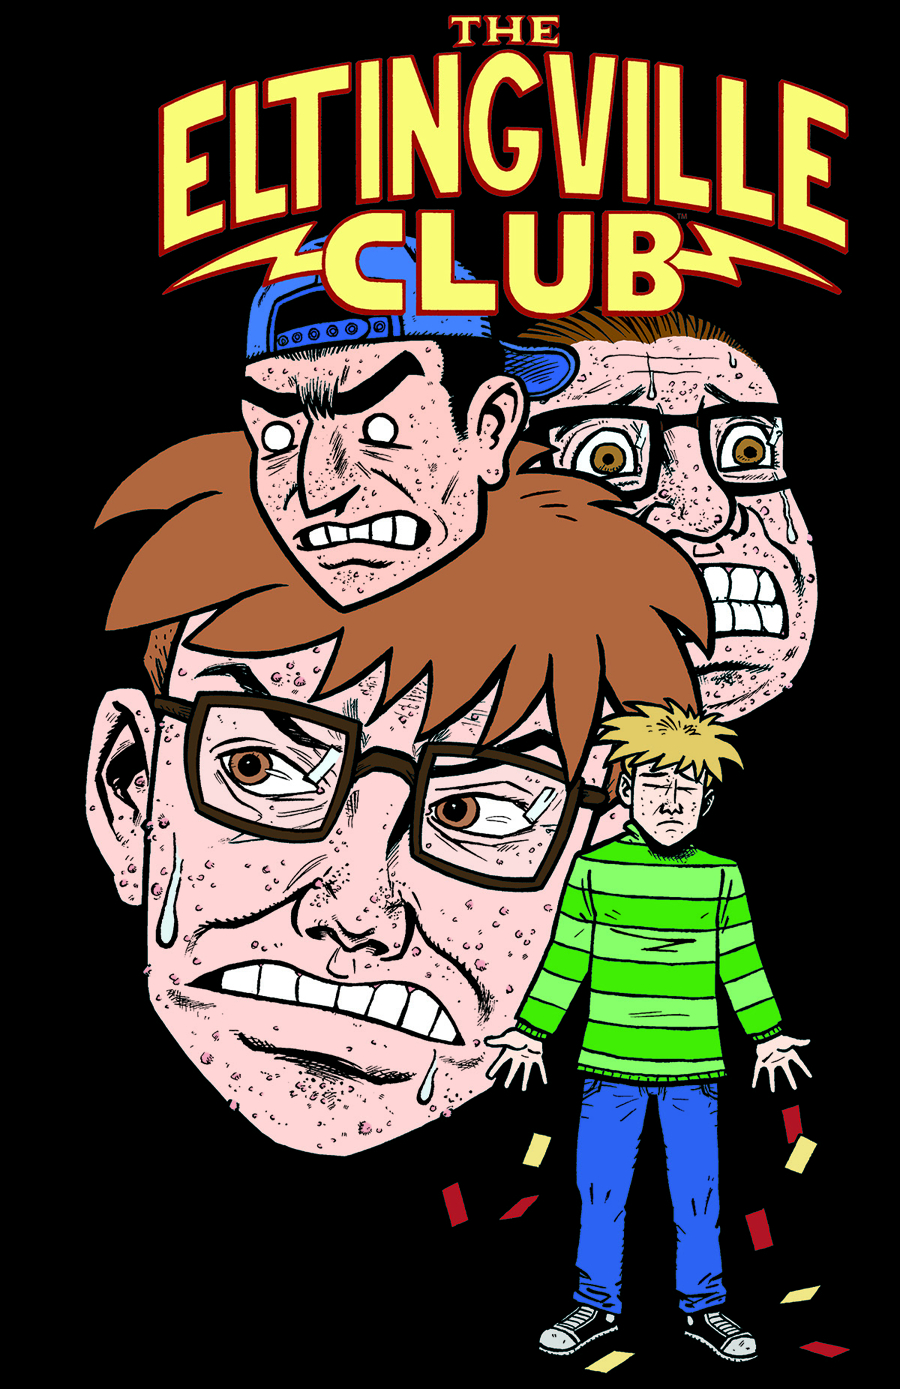 ELTINGVILLE CLUB #1 (OF 2)